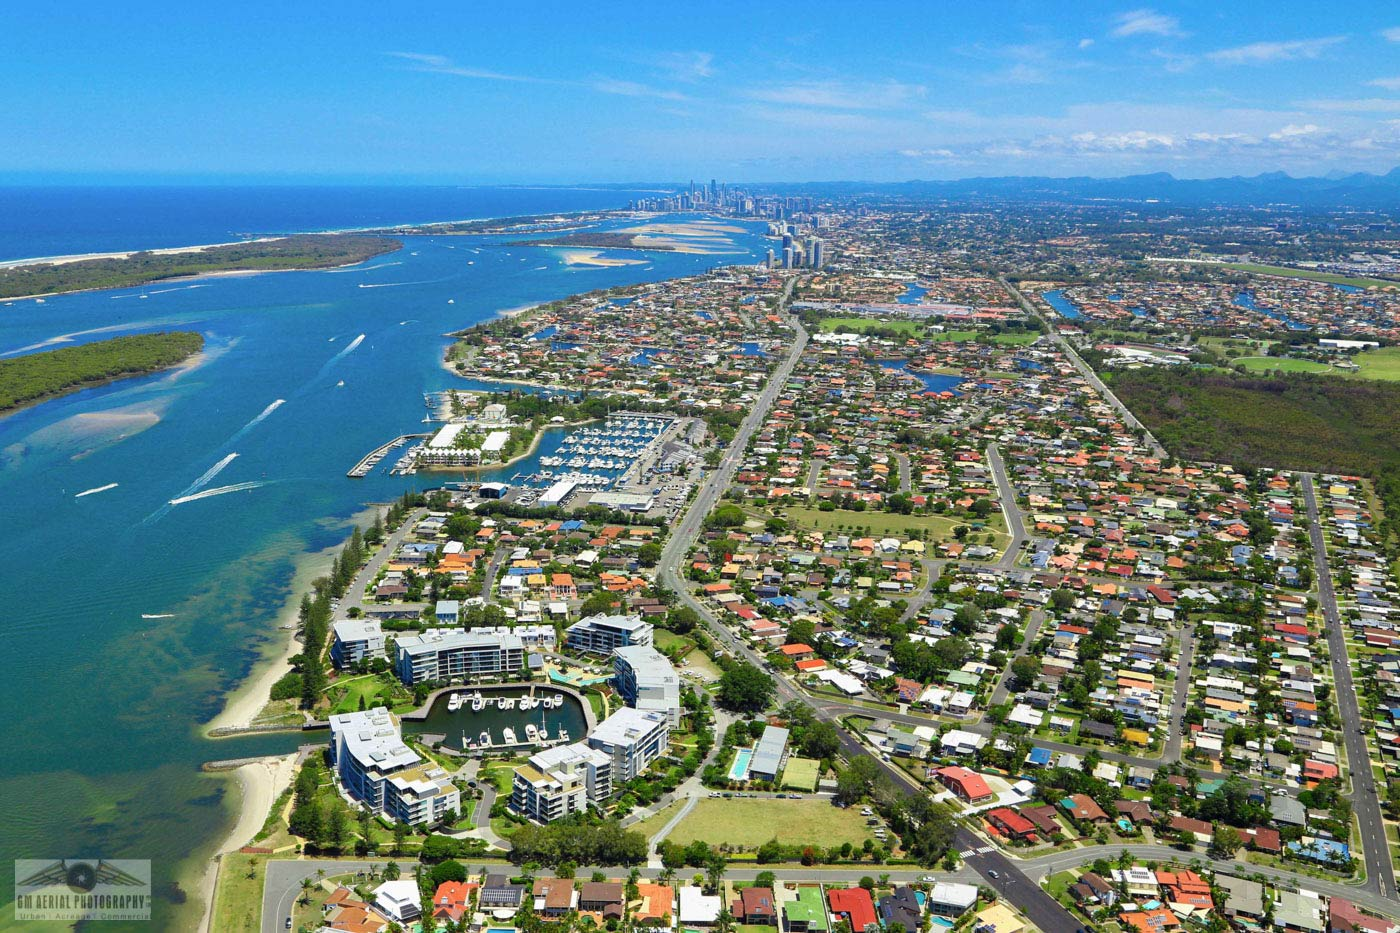 Gm Aerial Photography Aerial Photography Tweed Heads